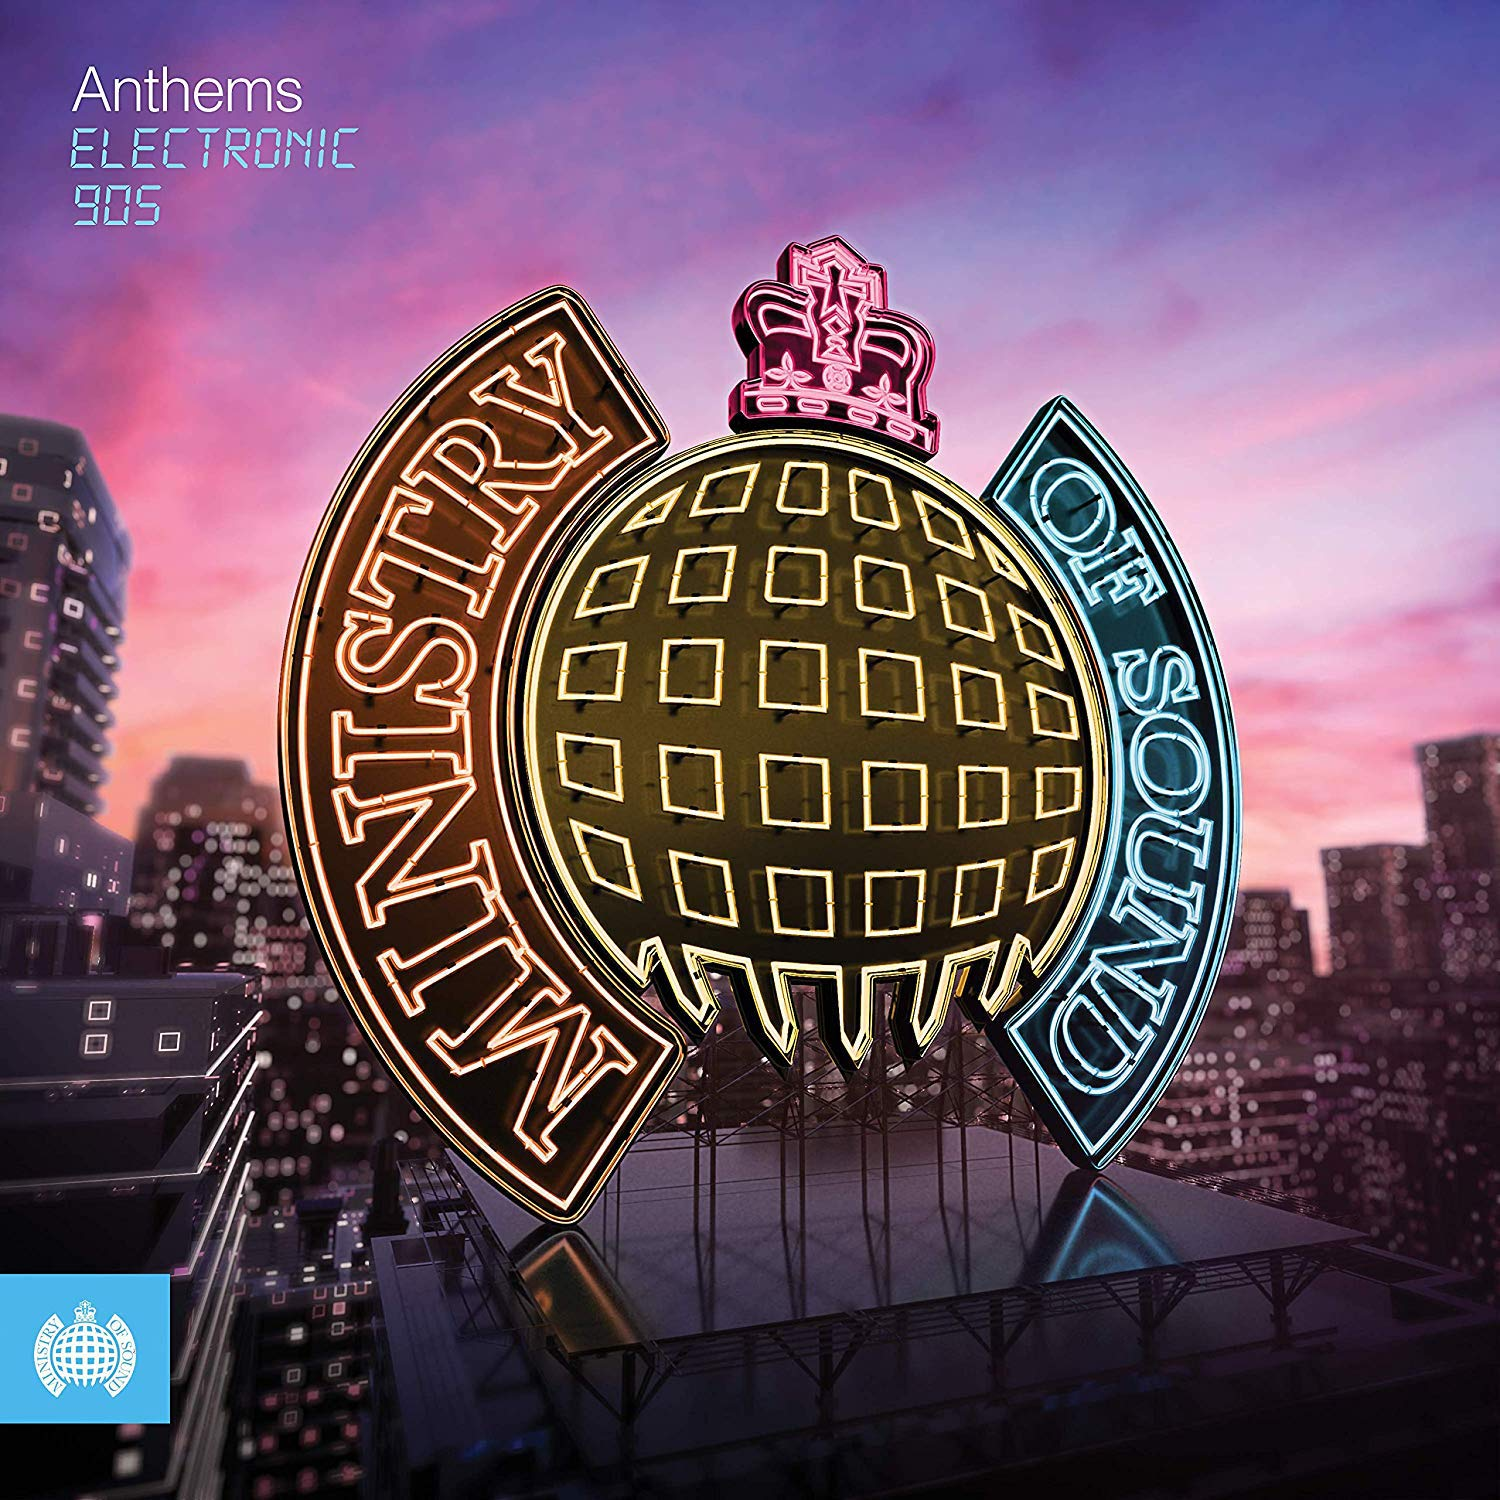 VA - Ministry of Sound Anthems Electronic 90s (2019) [FLAC] Download